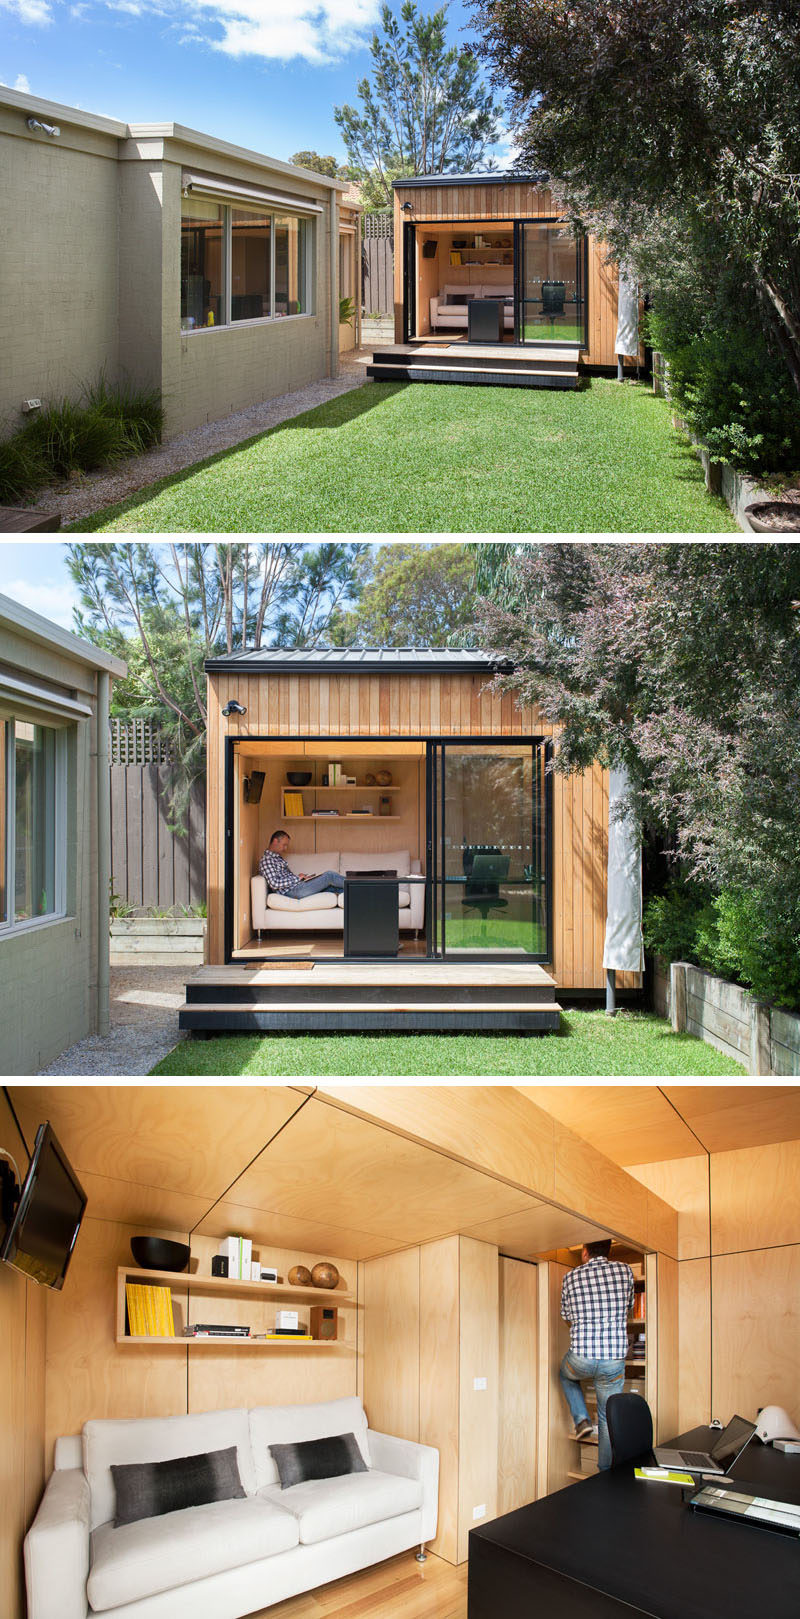 Merveilleux This Small Backyard Studio Has Been Carefully Designed To Accommodate A  Couch, A Work Space, And A Lofted Sleeping Area To Create The Ultimate  Backyard ...